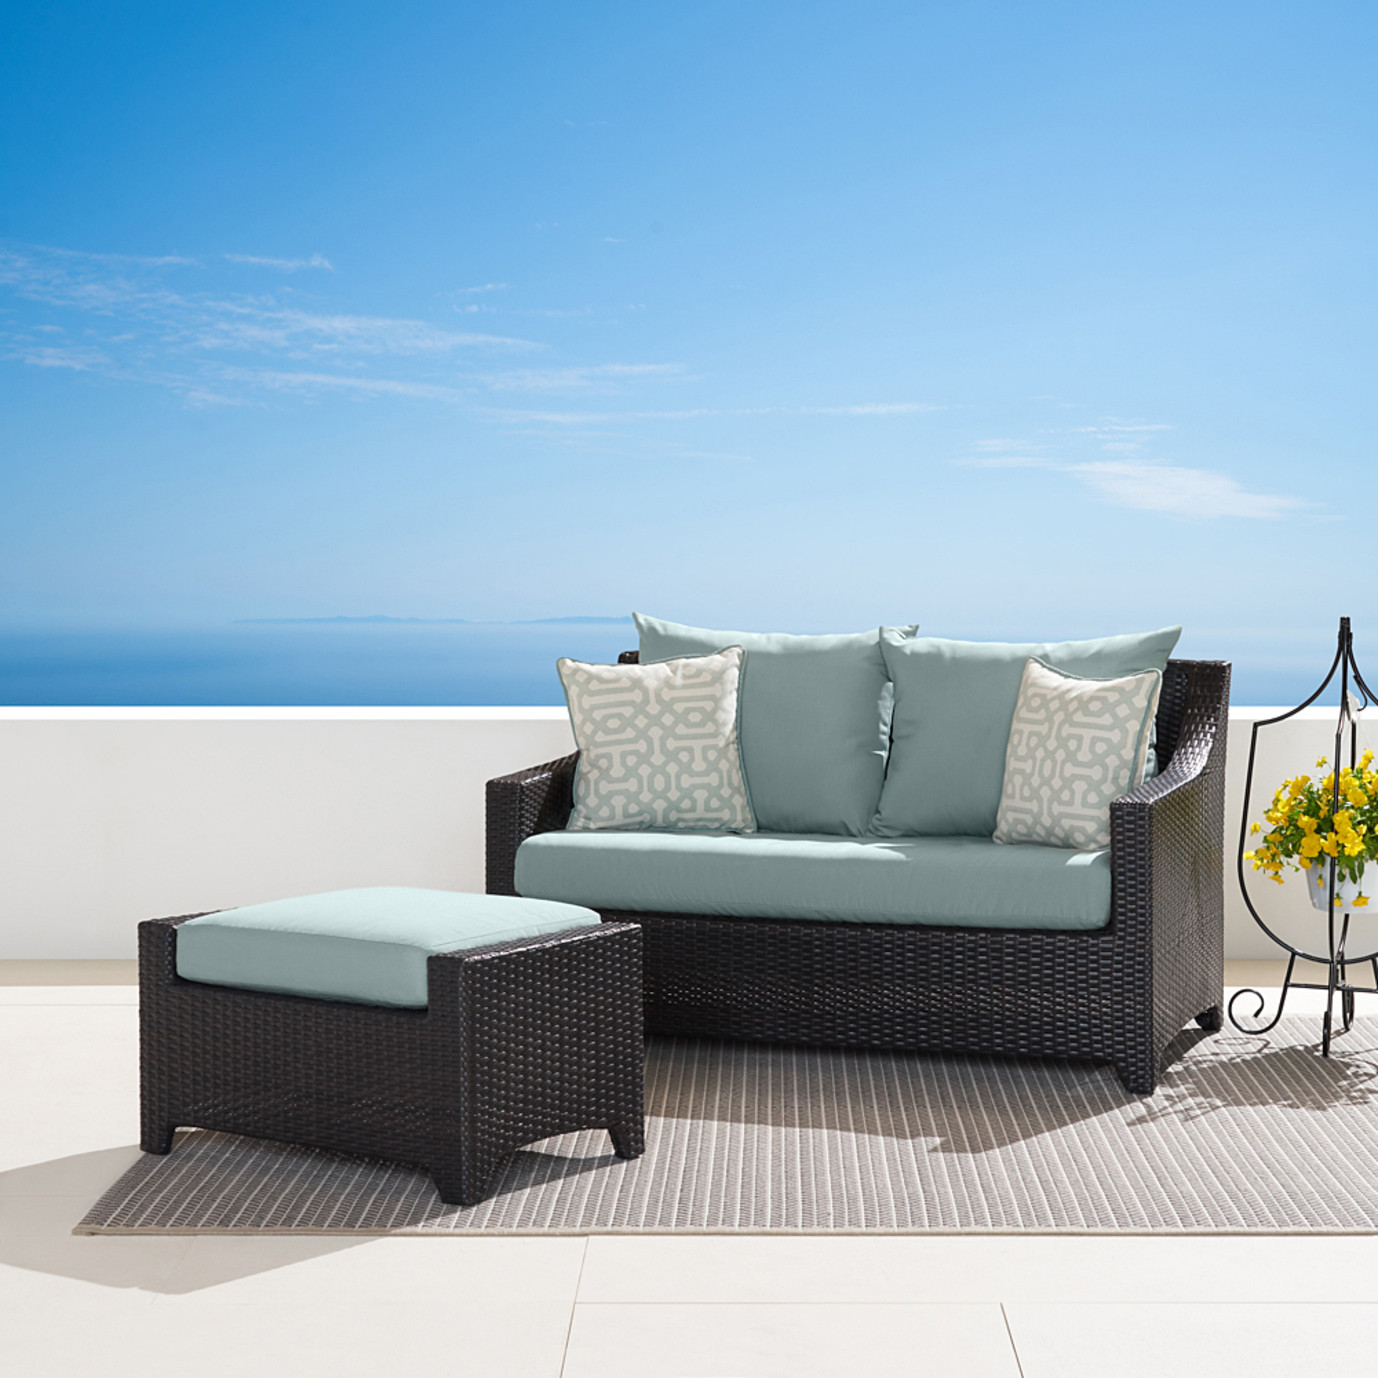 Deco™ Loveseat & Ottoman - Spa Blue